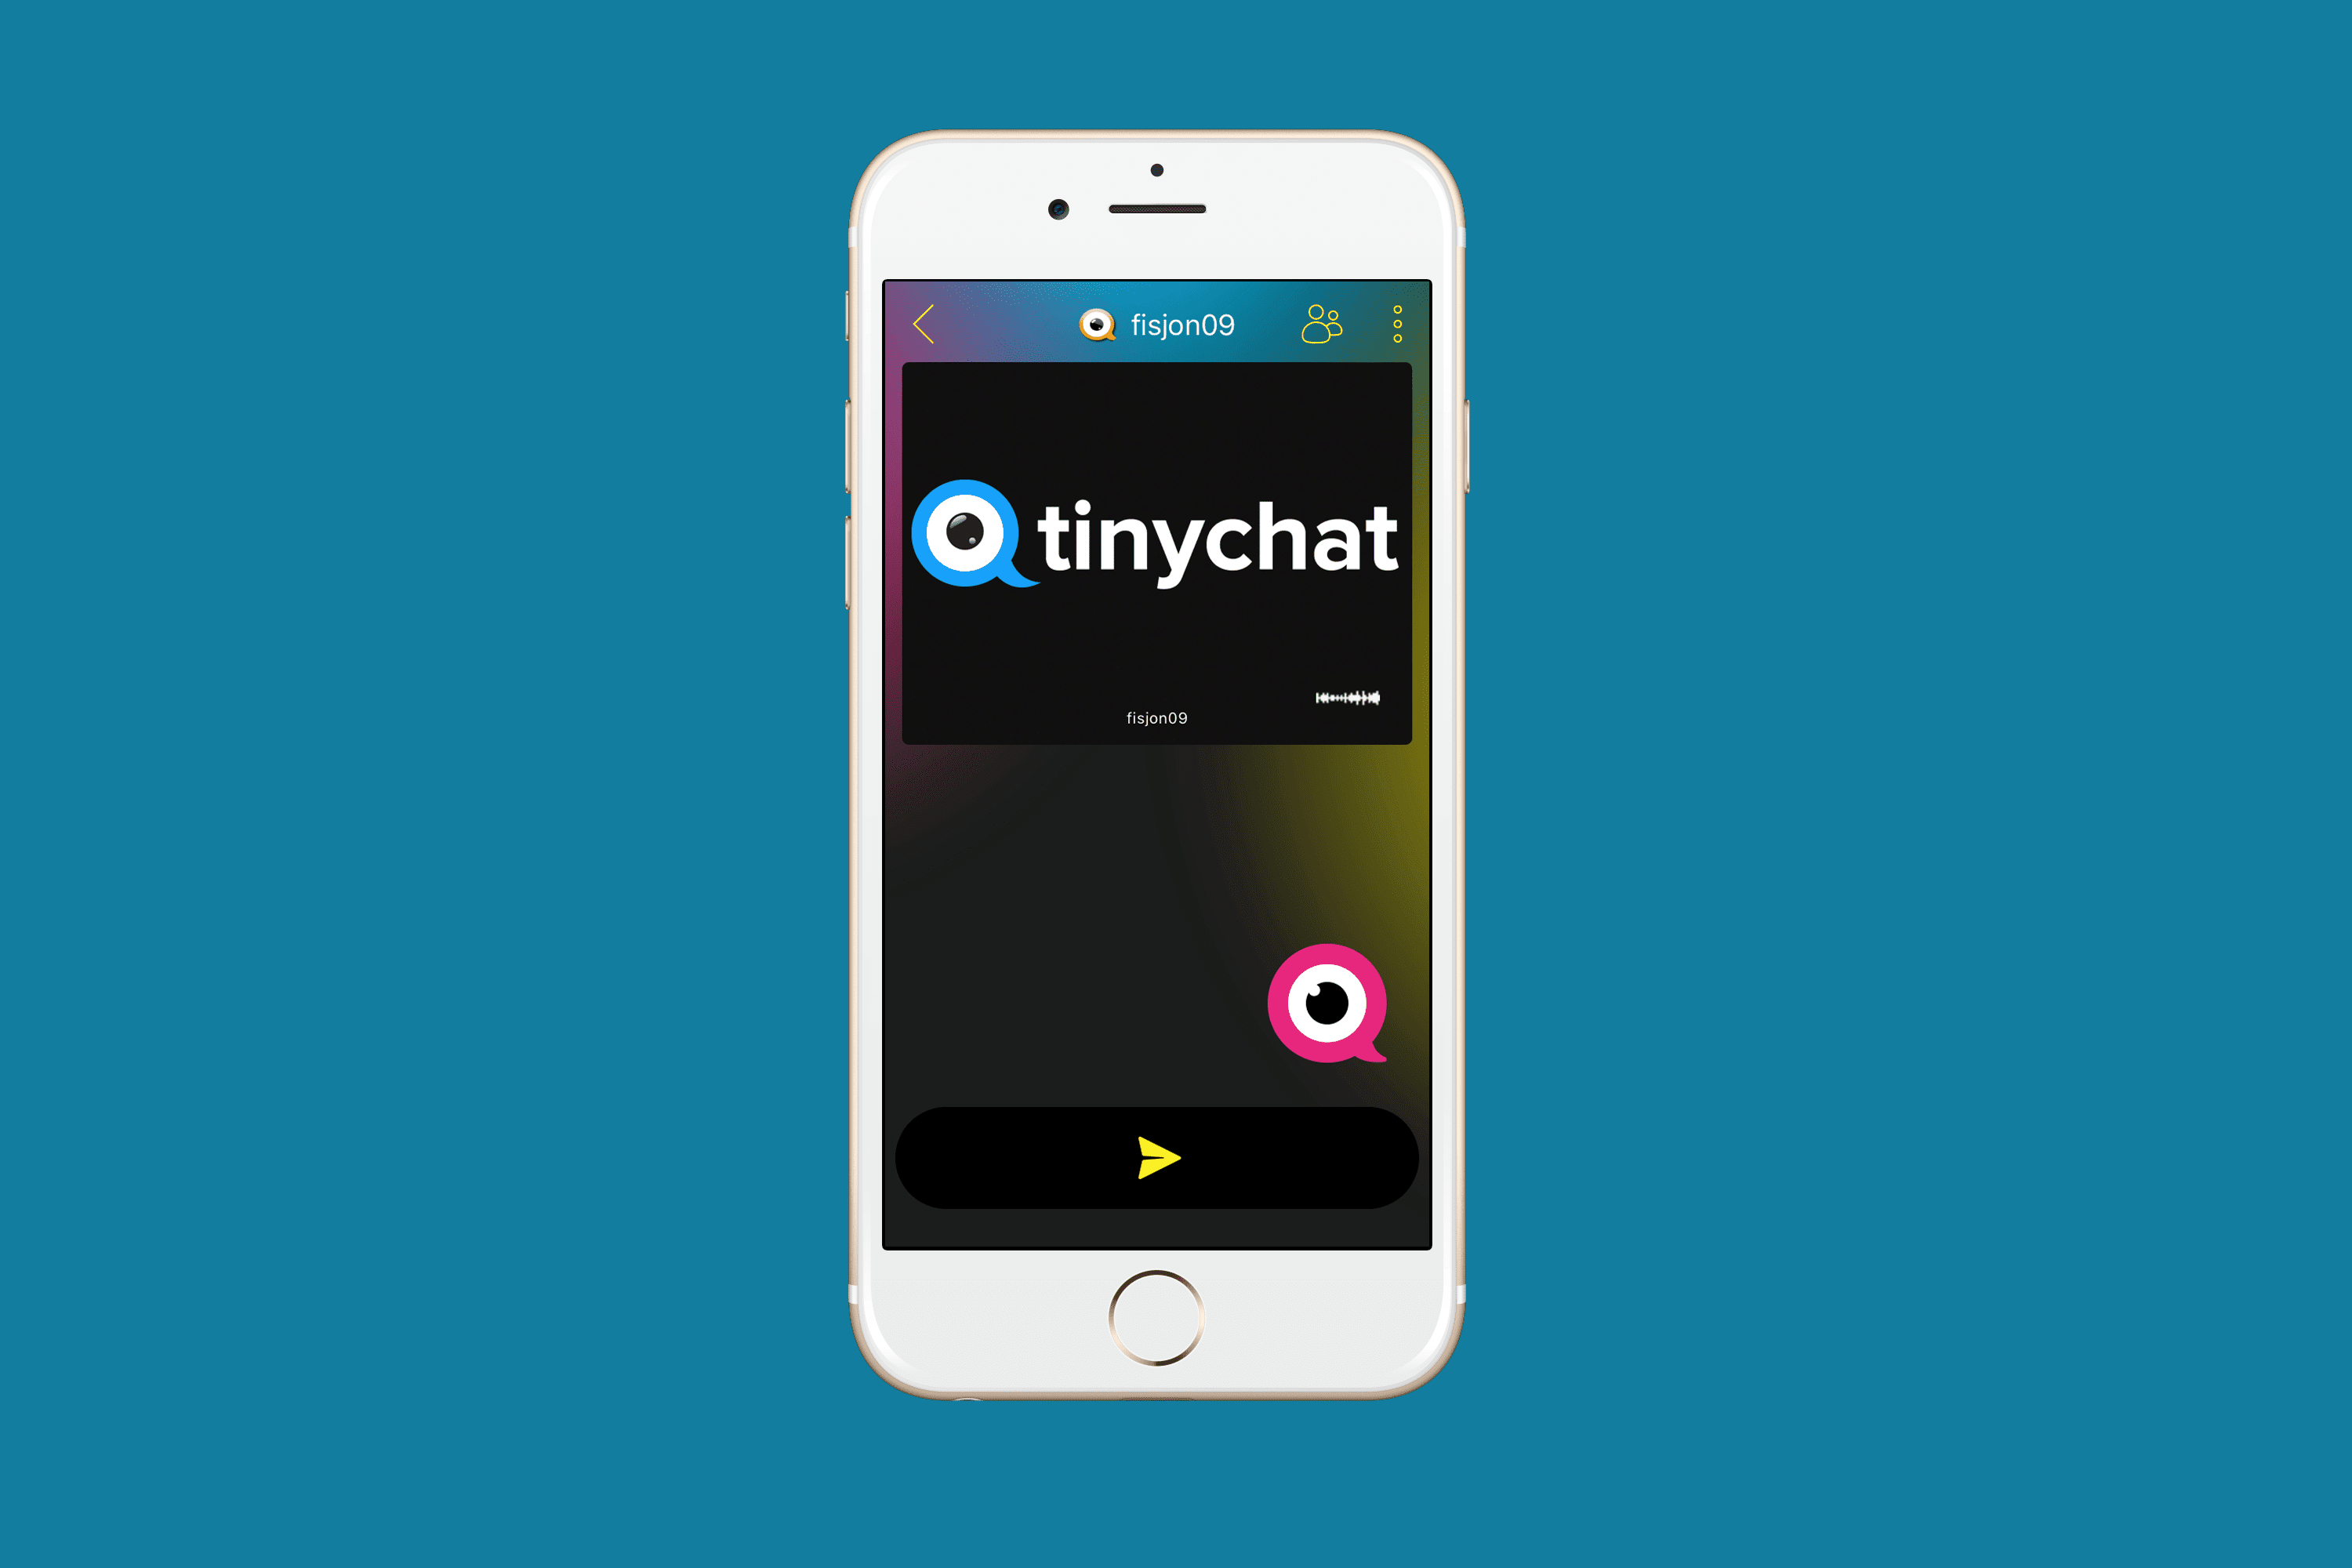 tinychat app android